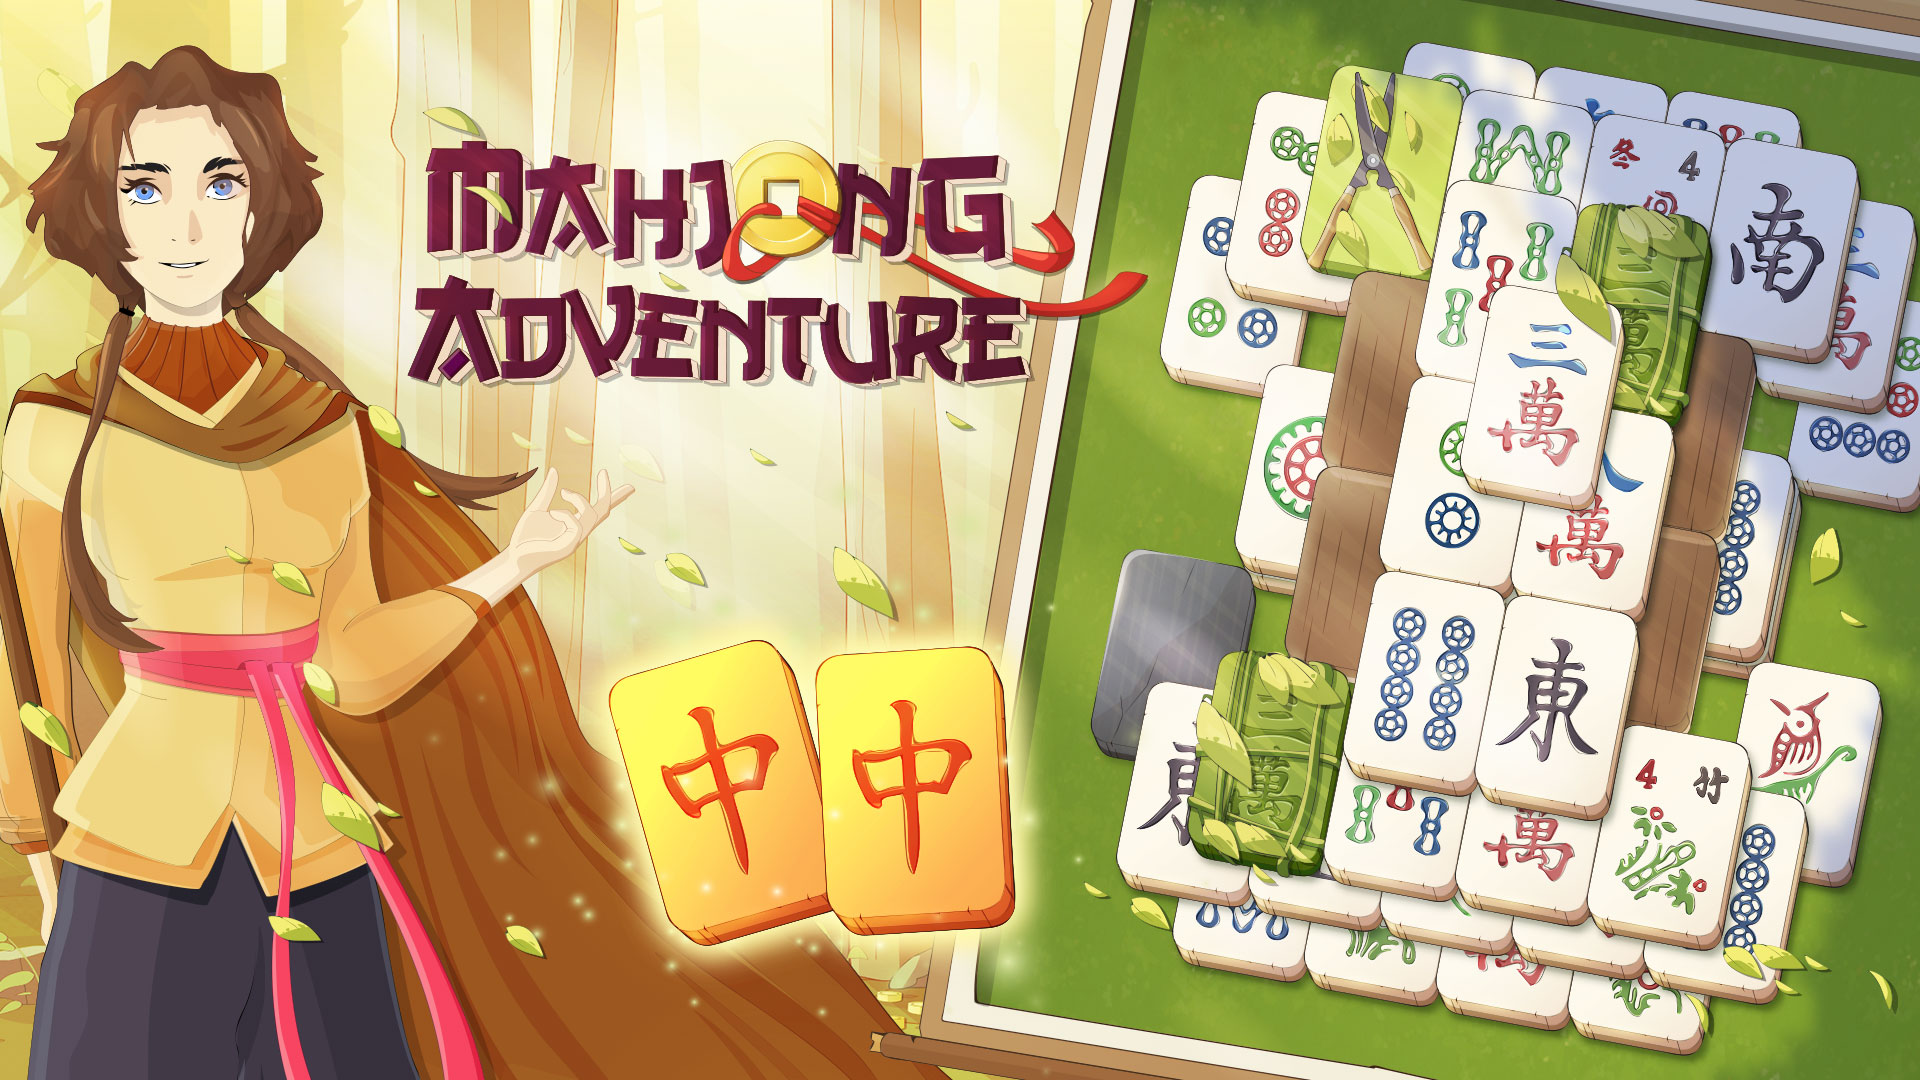 mahjongadventure_screen_1080x1920_1